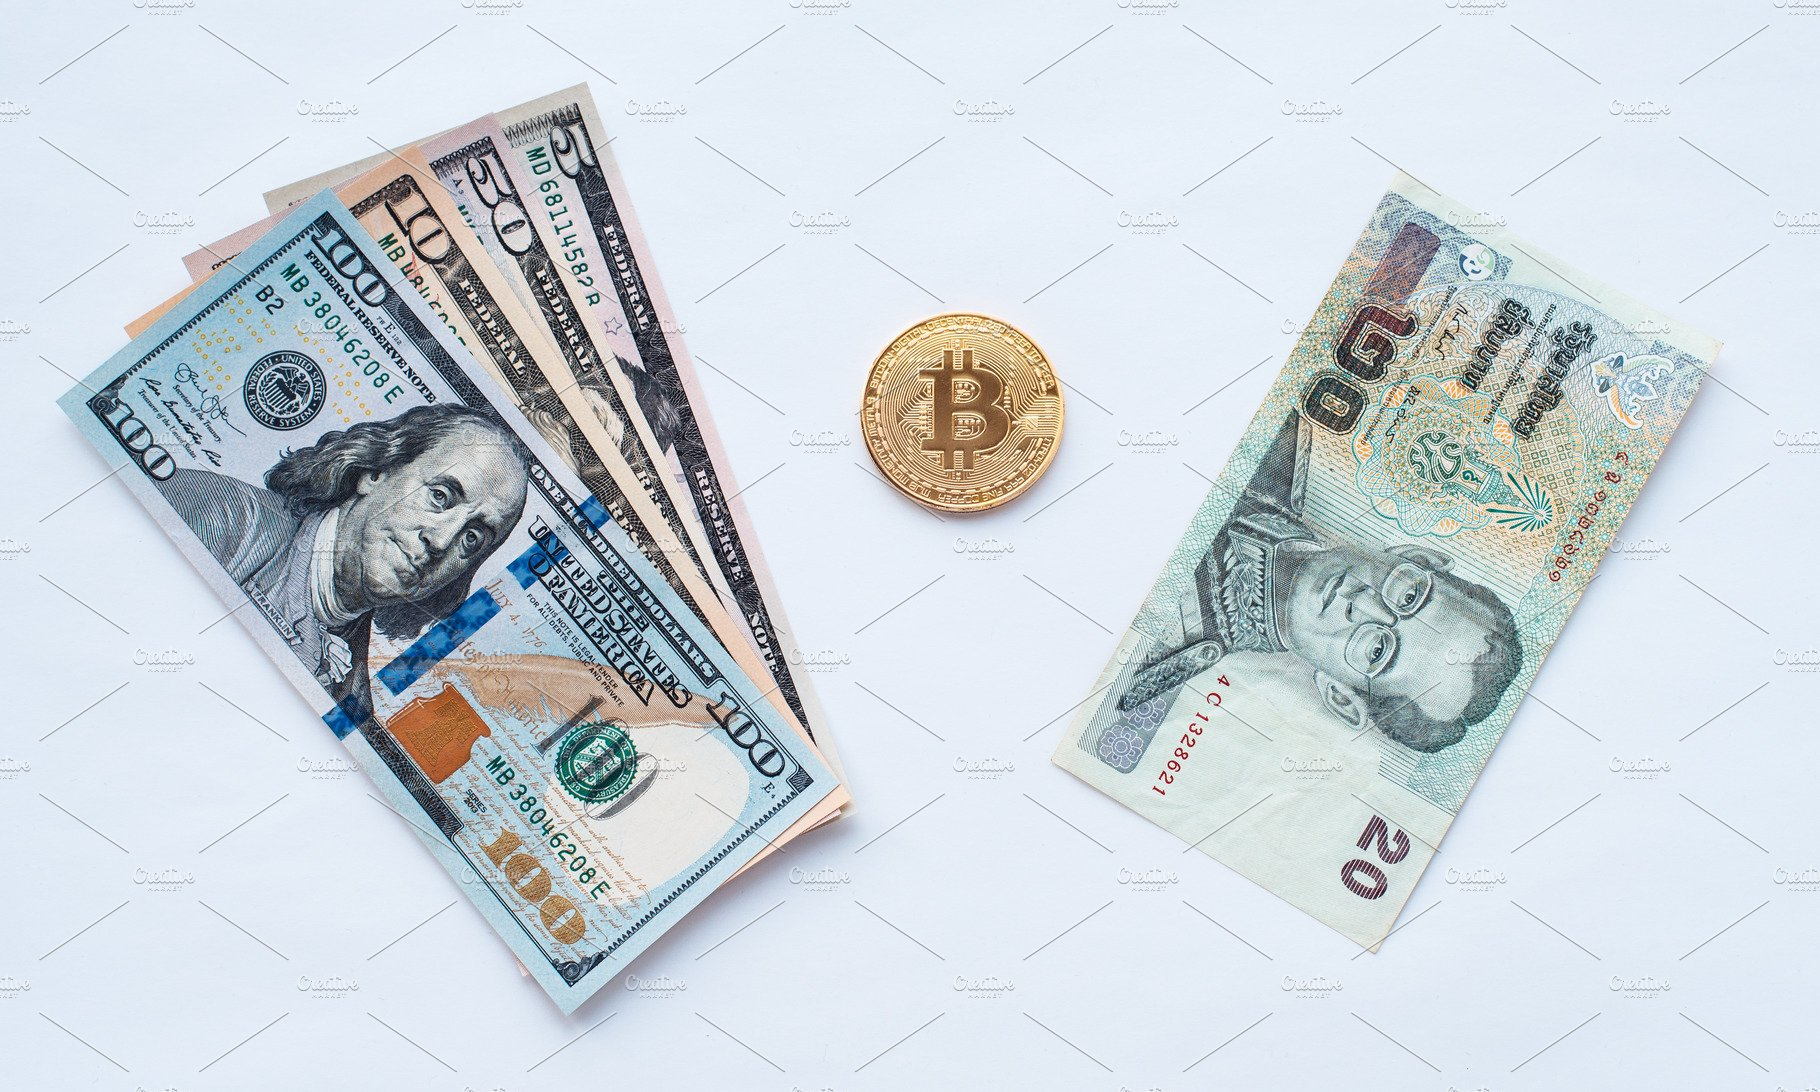 On A White Background Exchange Of Thai Baht For Us Dollars Metal Coin Bitcoin In Paper Money From Crypto Currency Business Images Creative Market